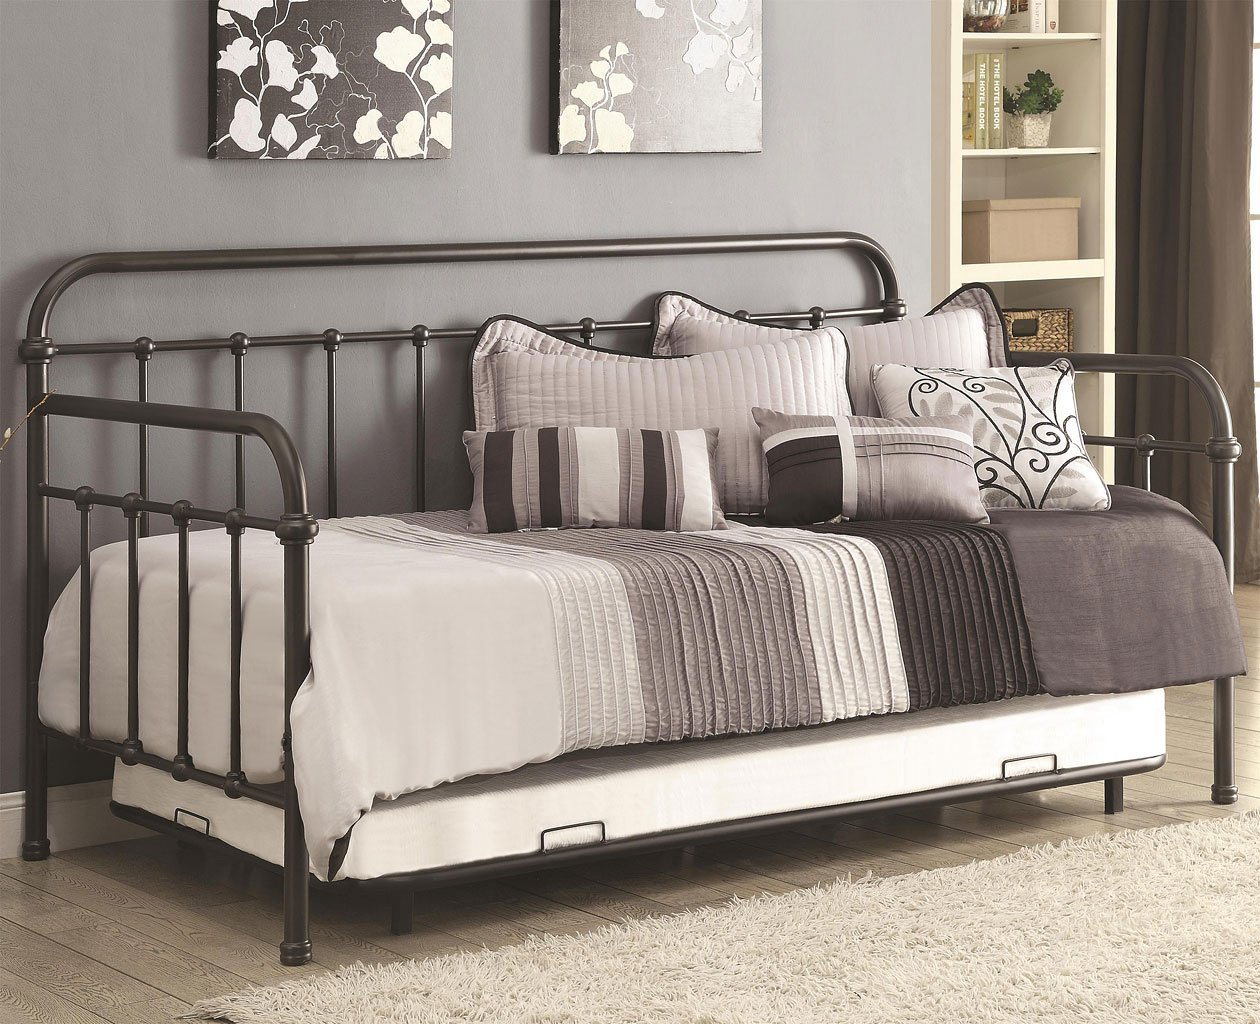 Dark Bronze Metal Daybed w/ Trundle - Bedroom Furniture - Bedroom